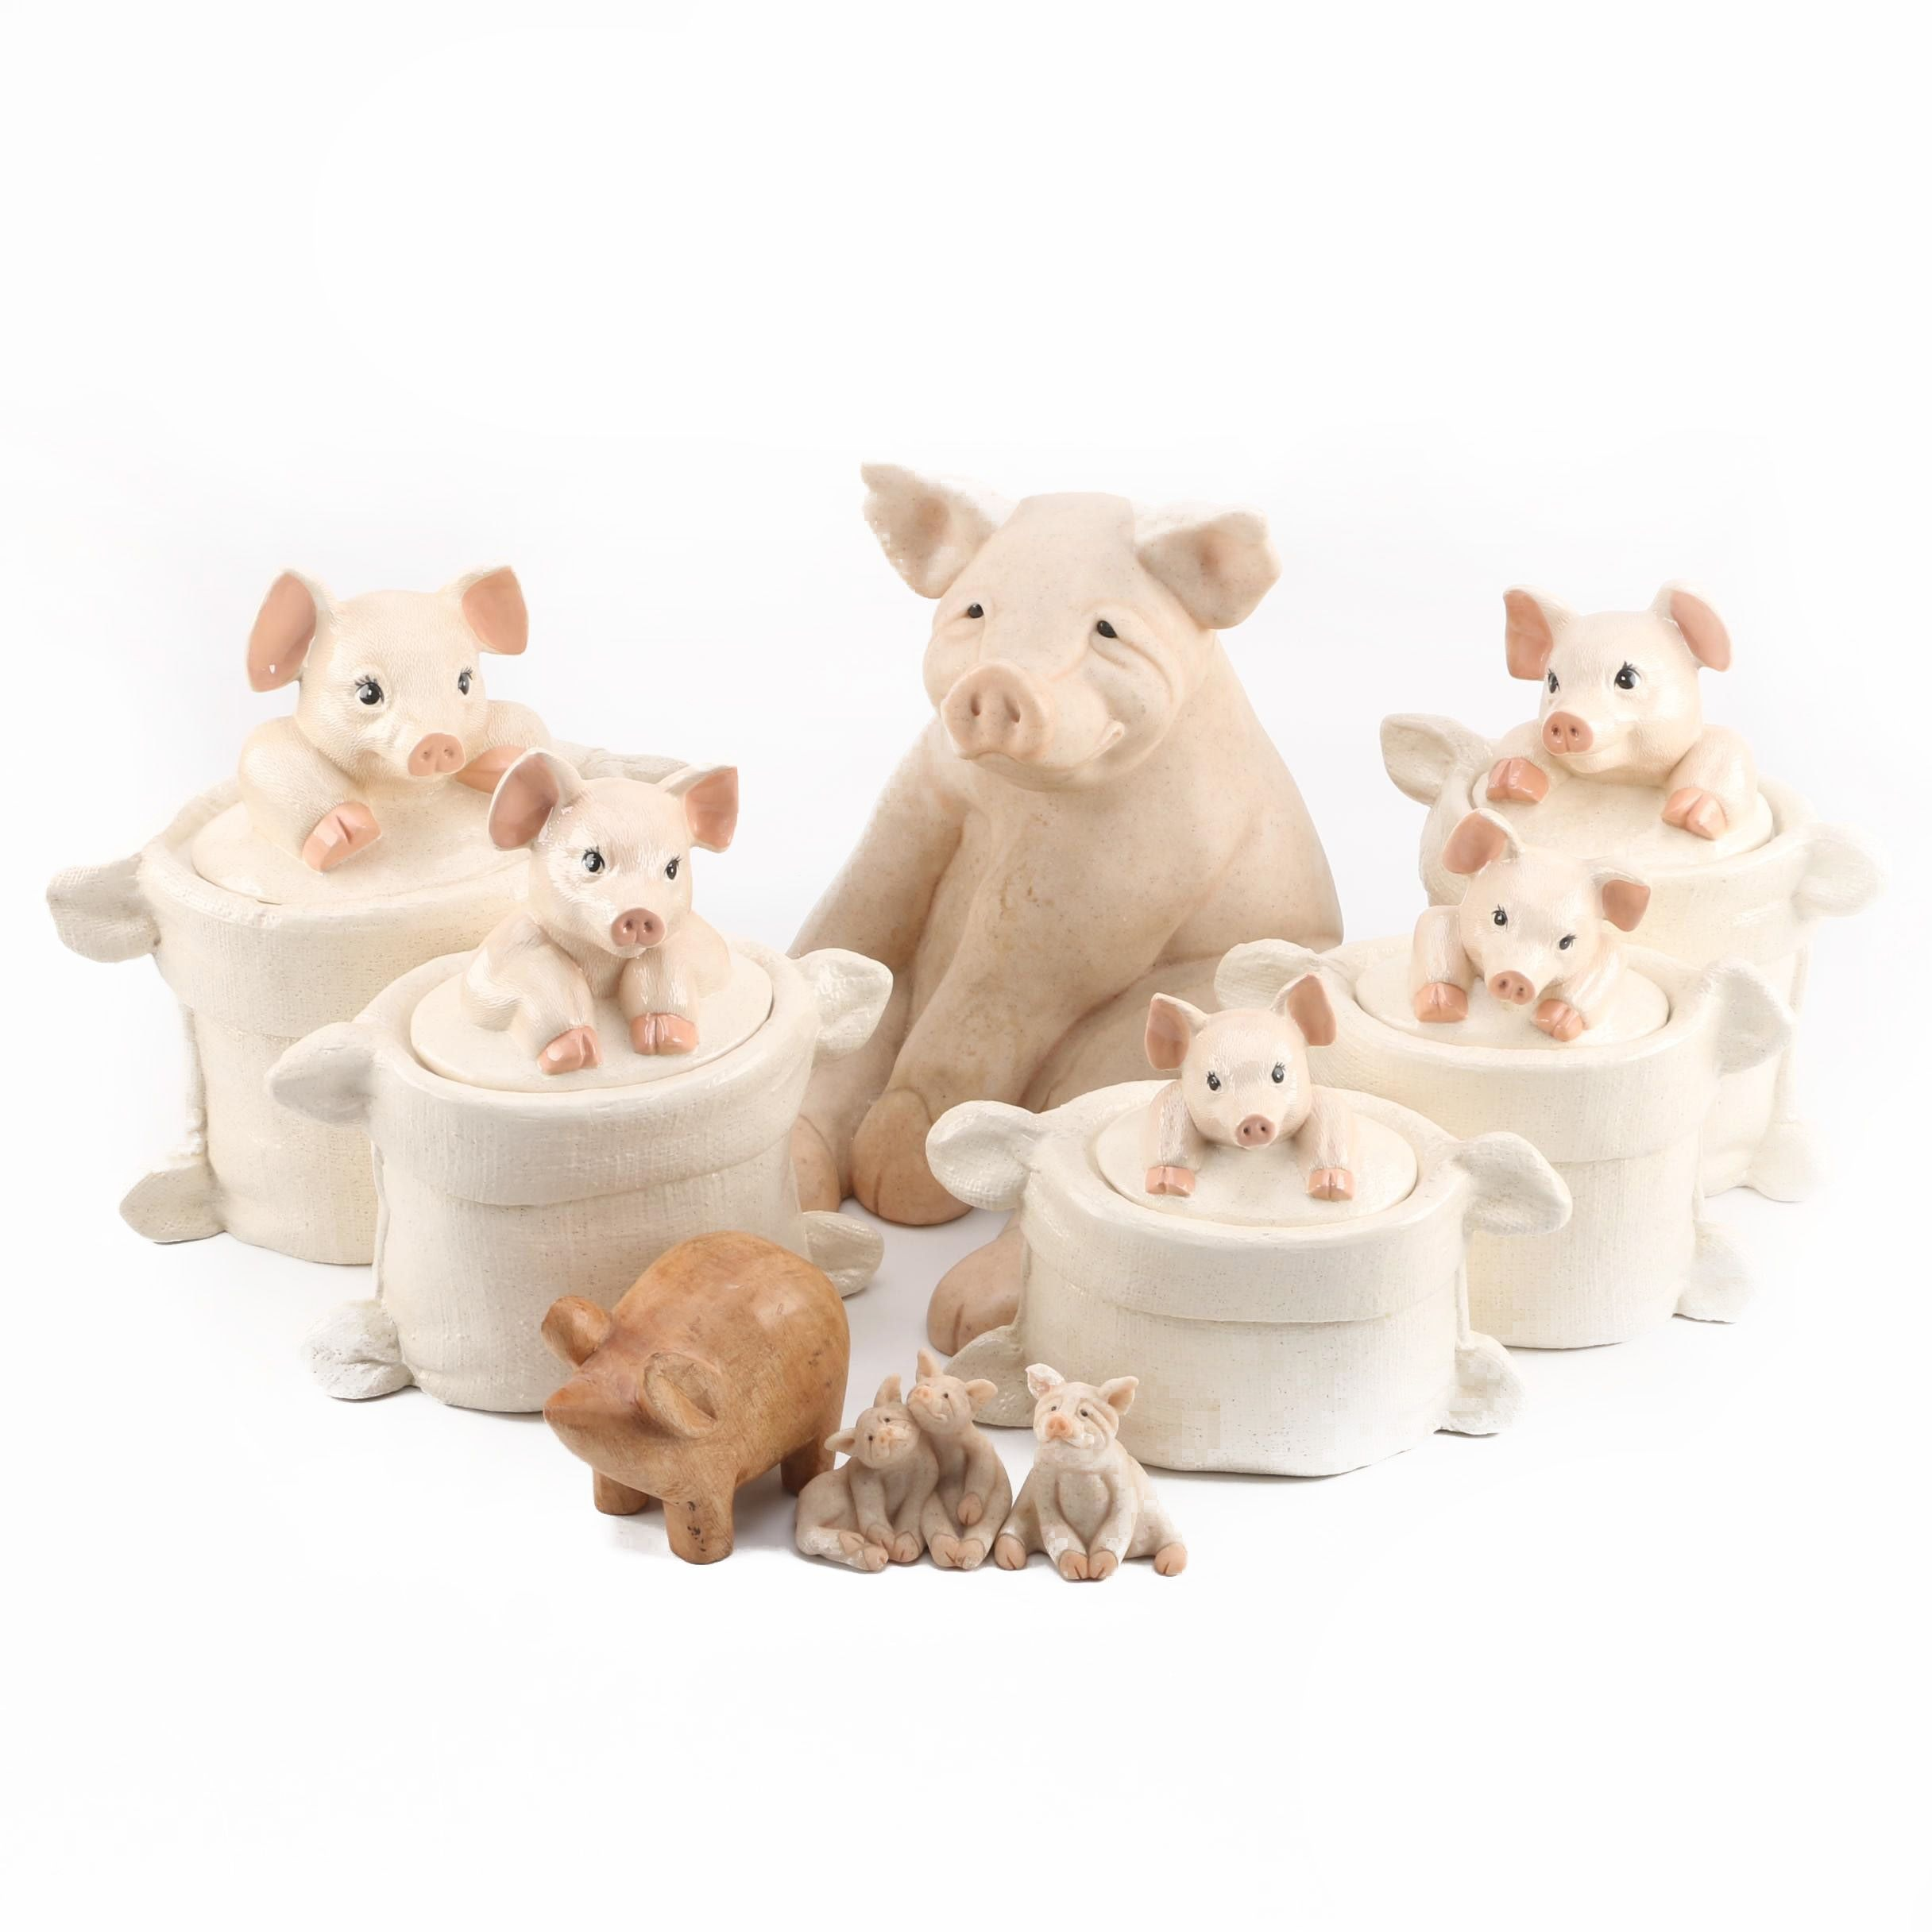 Pig Figurines and Containers